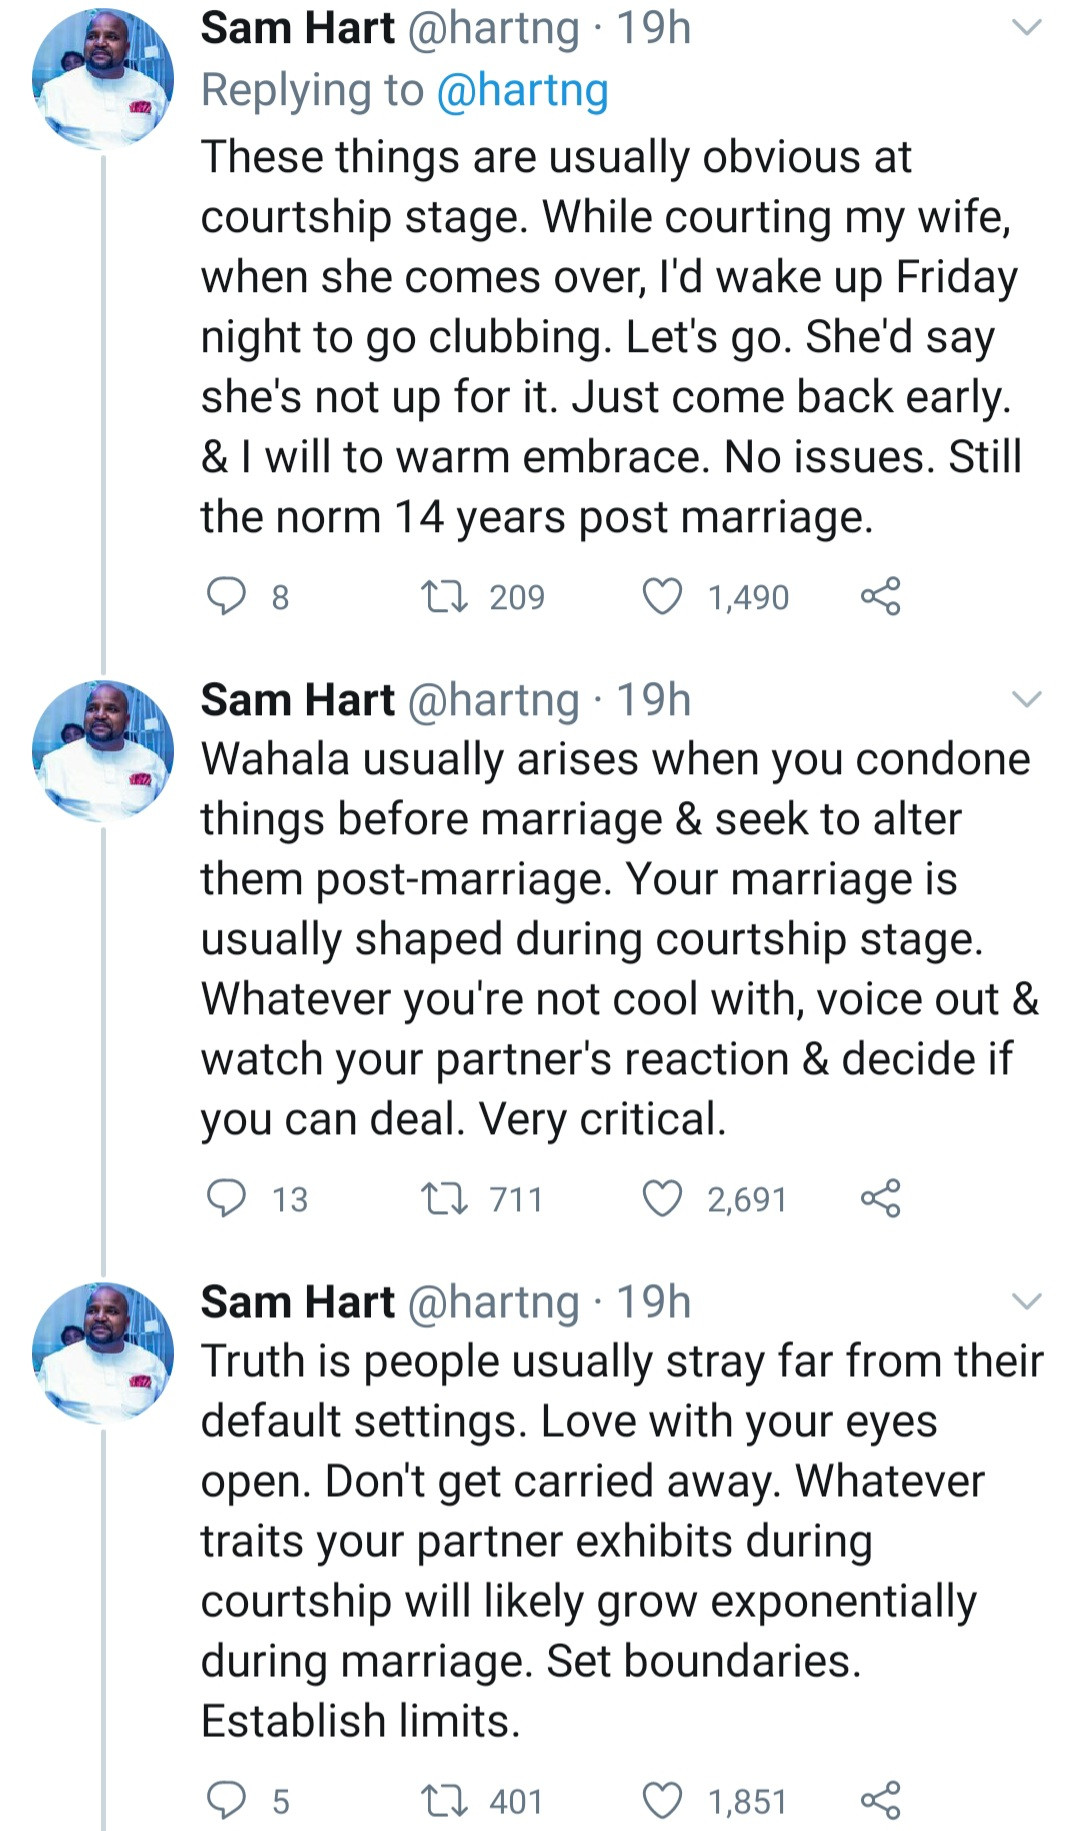 """""""Problem arises when you condone things before marriage & seek to alter them post-marriage"""" Director General of ASMQMA advices after 14 years of marriage"""